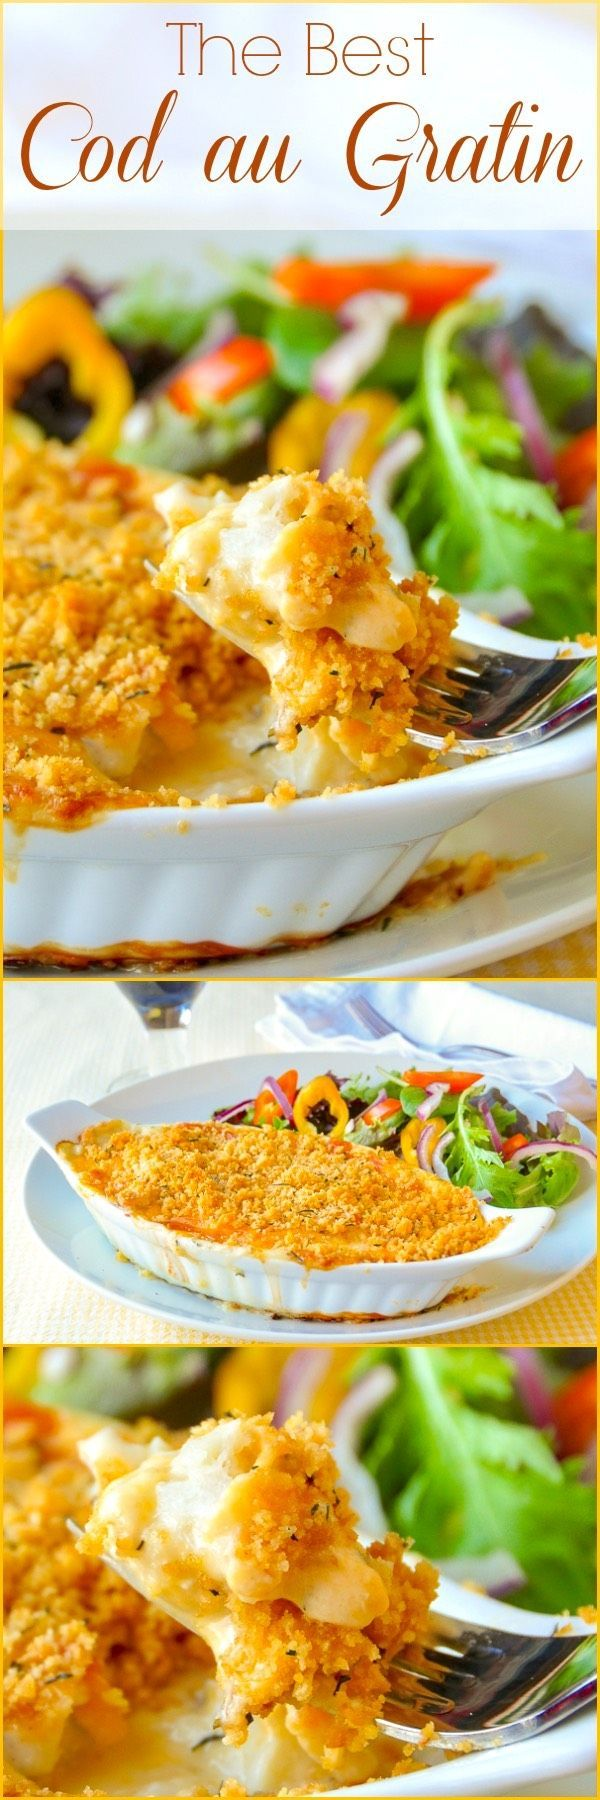 Cod au Gratin. One of our most popular recipes in ten years online. This version is easy to prepare and gets rave reviews every time. #seafood #fish #dinnerparty #newfoundlandfood #cod